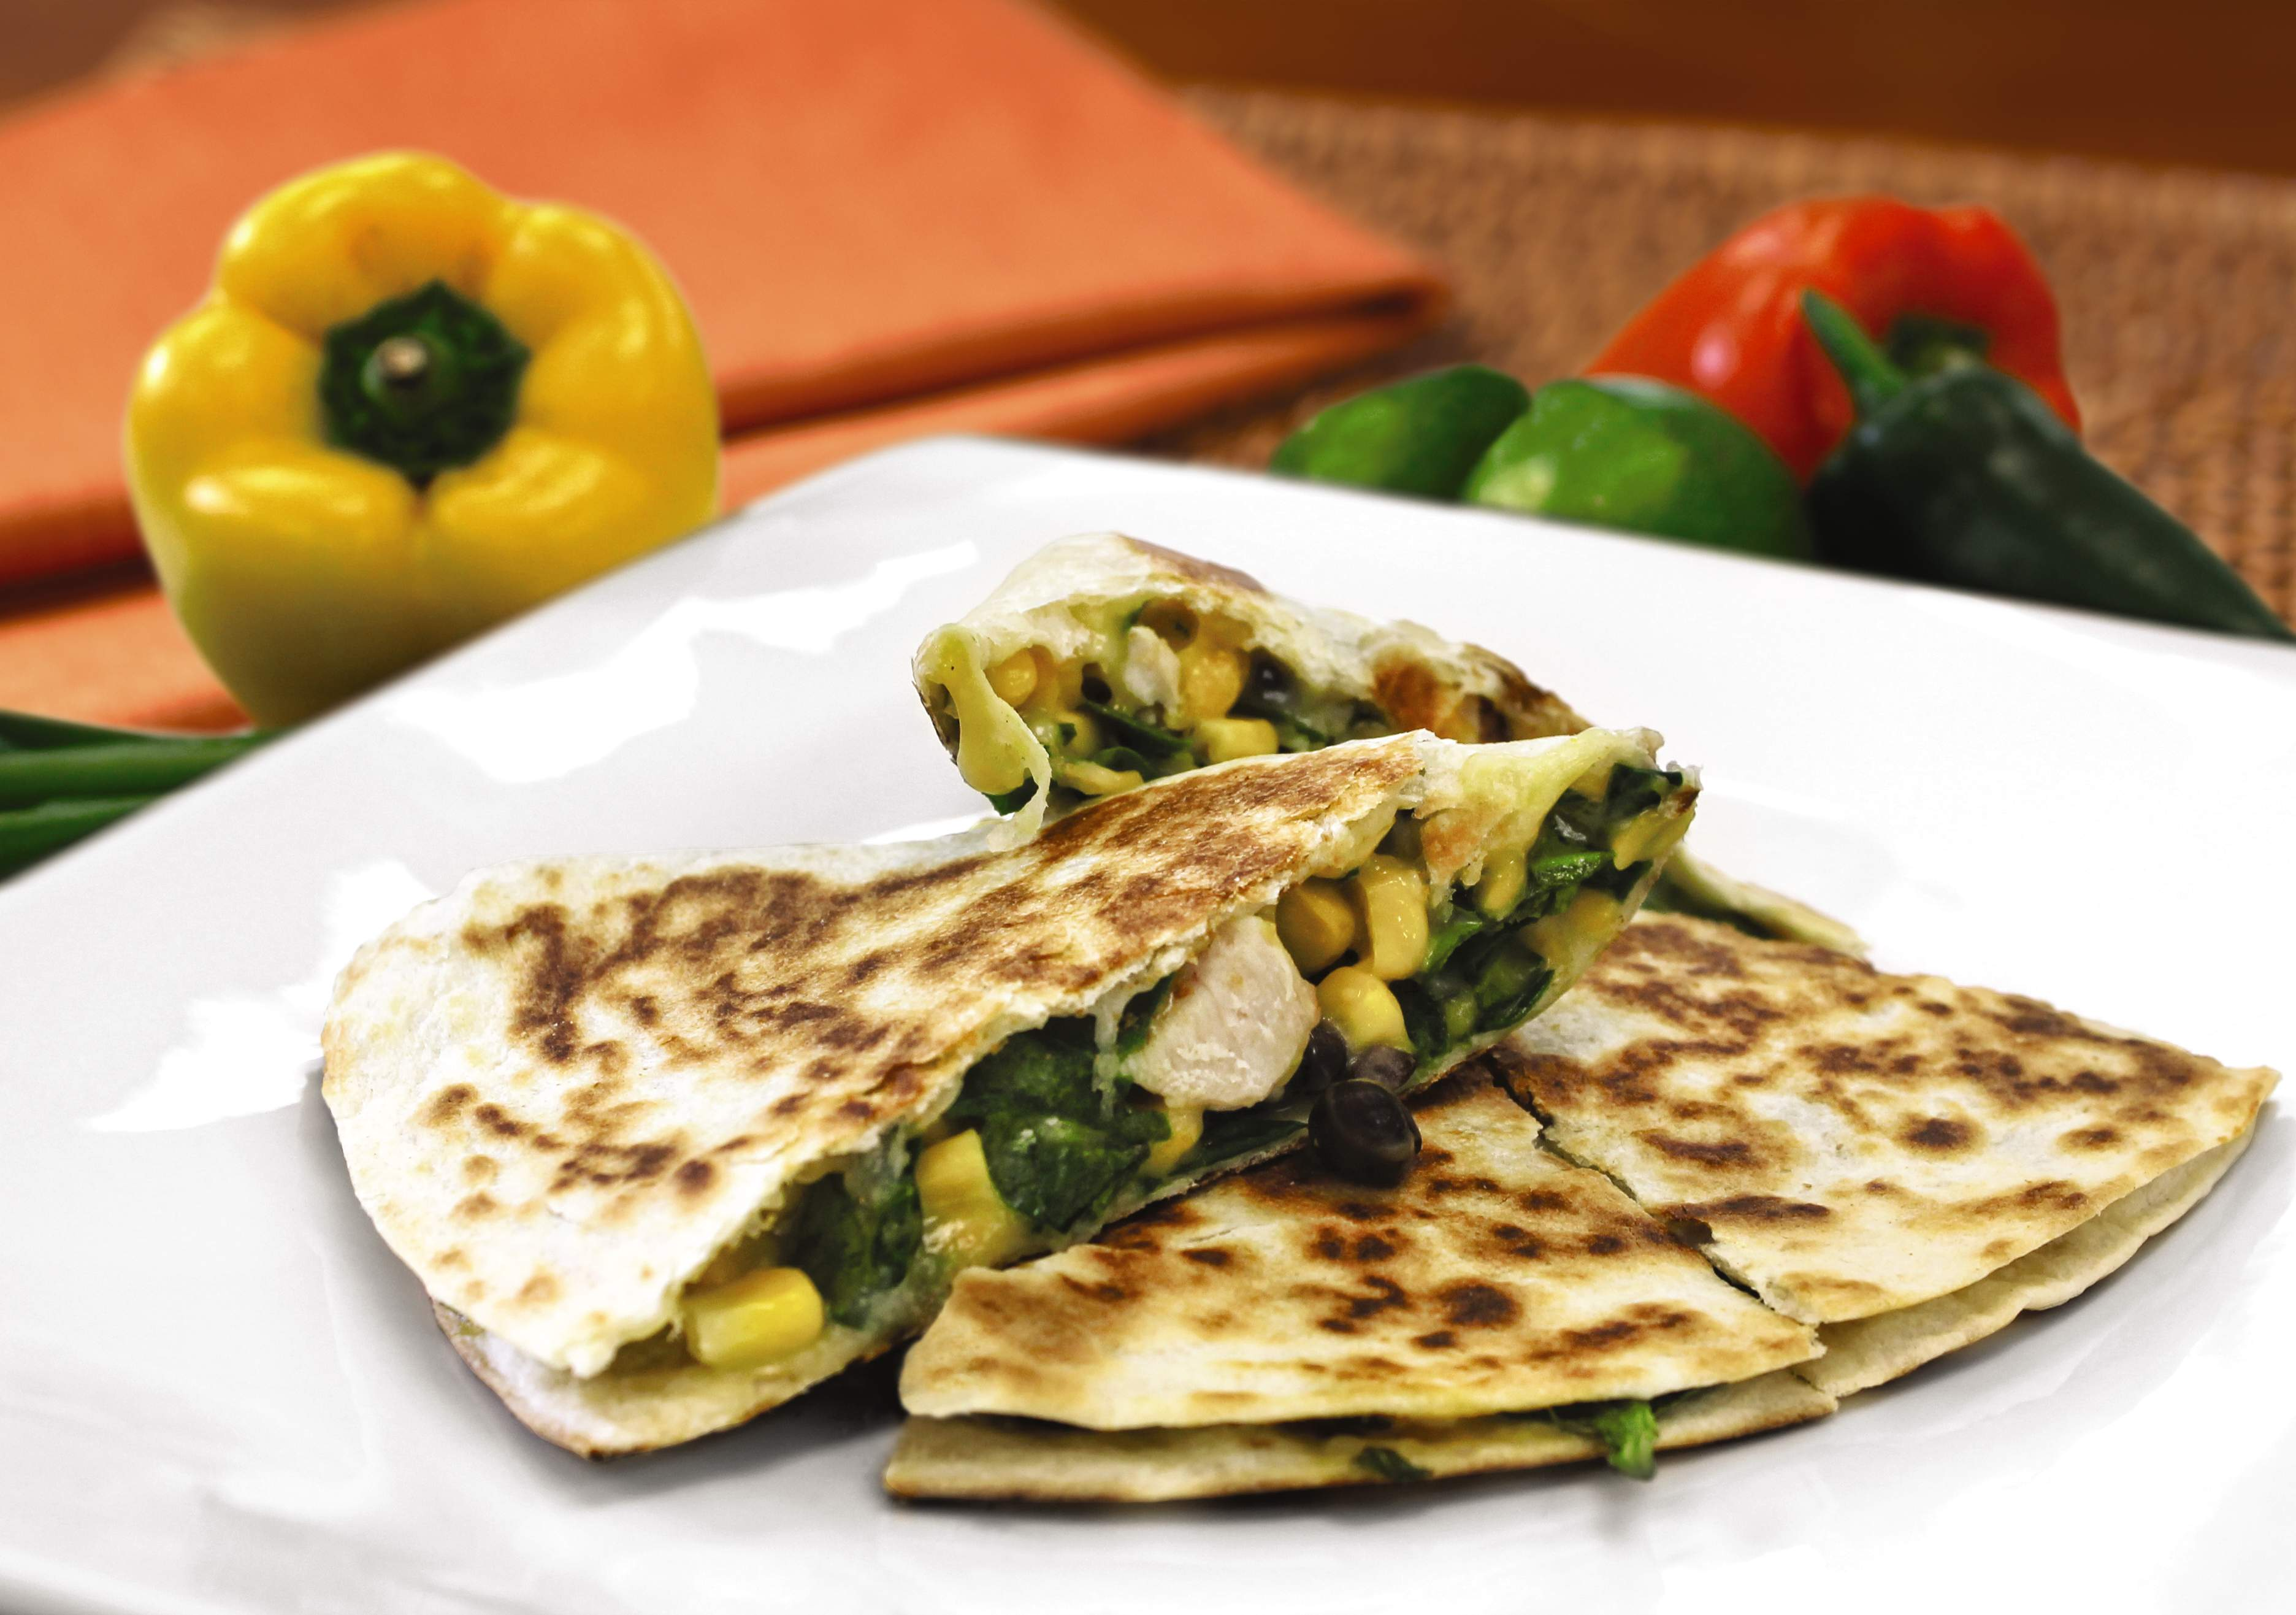 Southwestern chicken quesadilla with black beans and spinach.